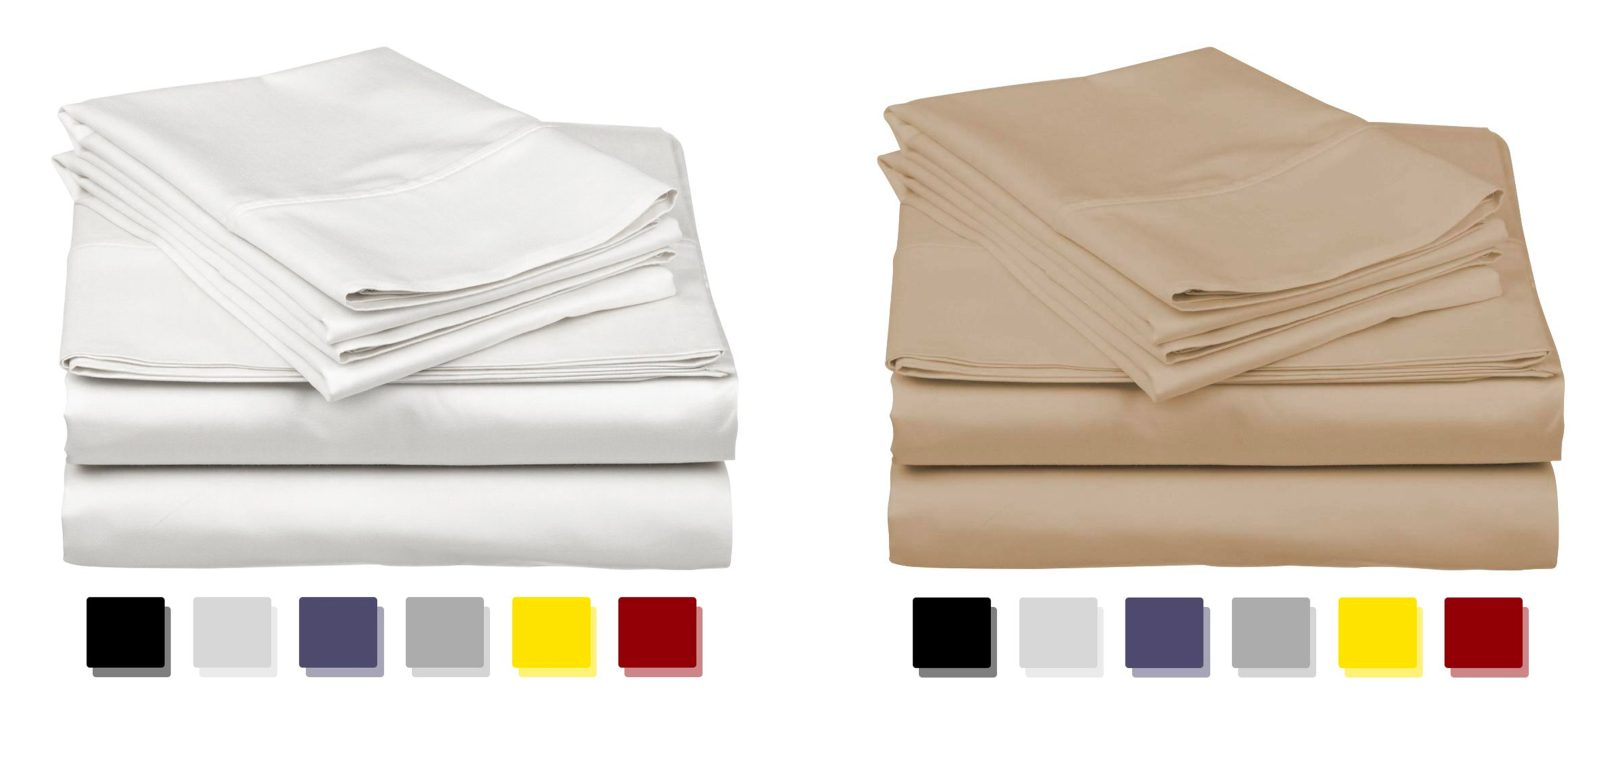 Egyptian cotton sheets at 40% off in today's Amazon Gold Box from $54